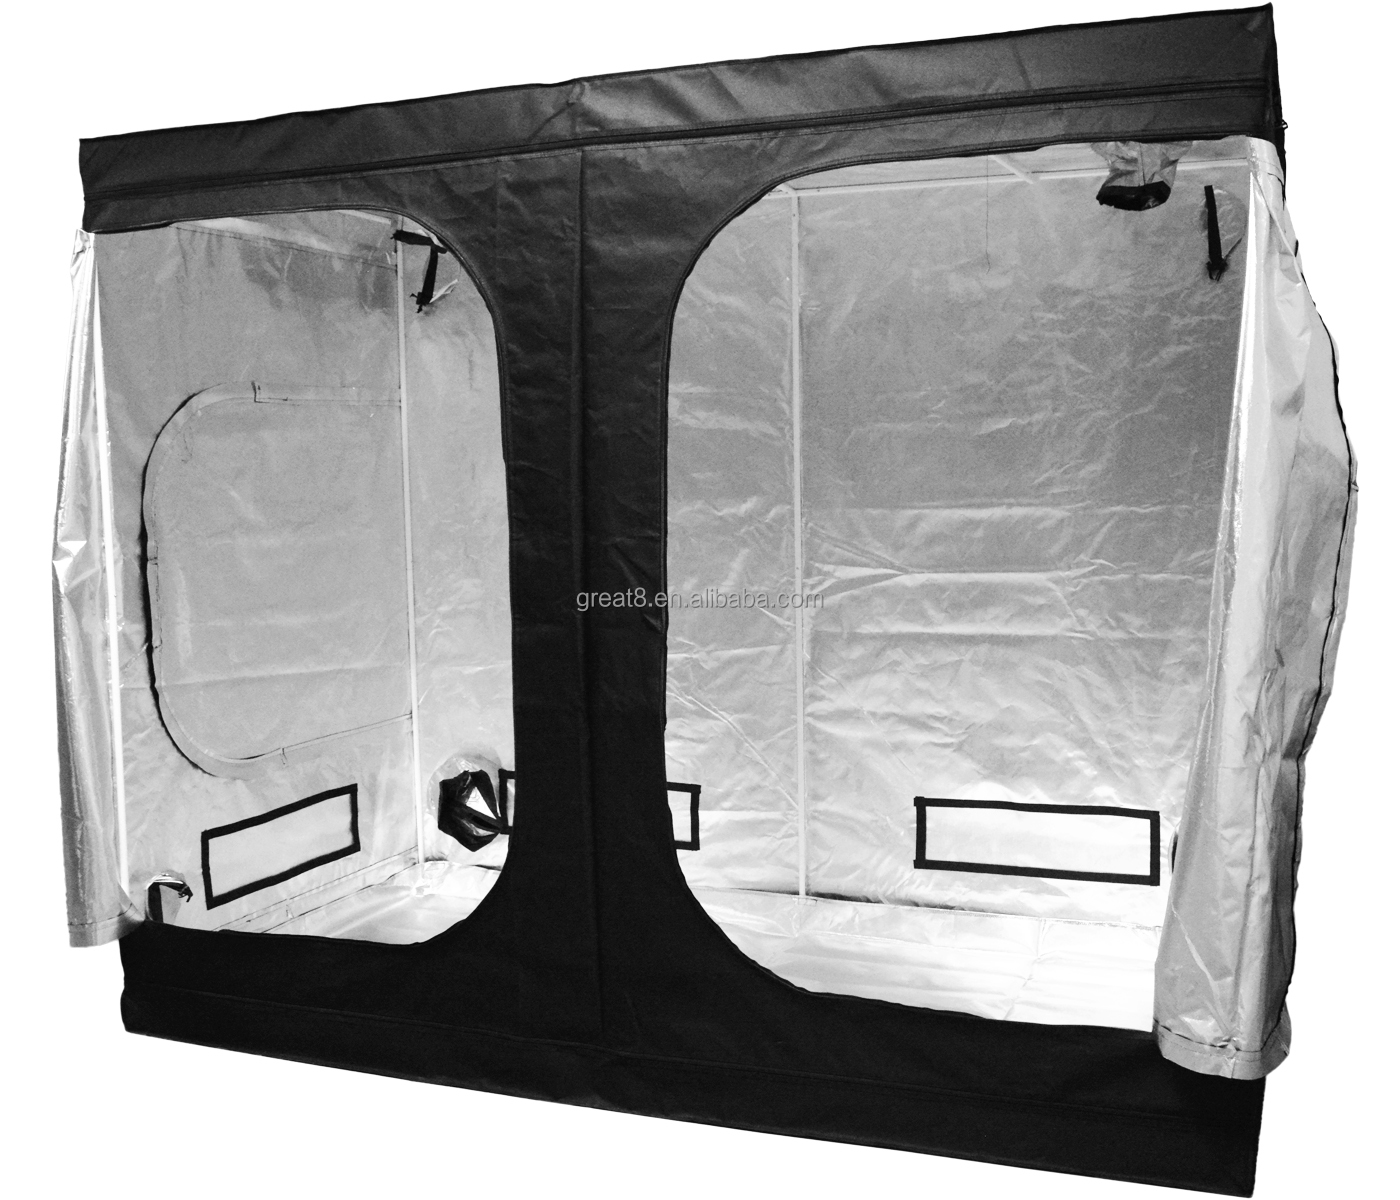 98.9% Highly Reflective Fabric Durable Mylar Grow Tent